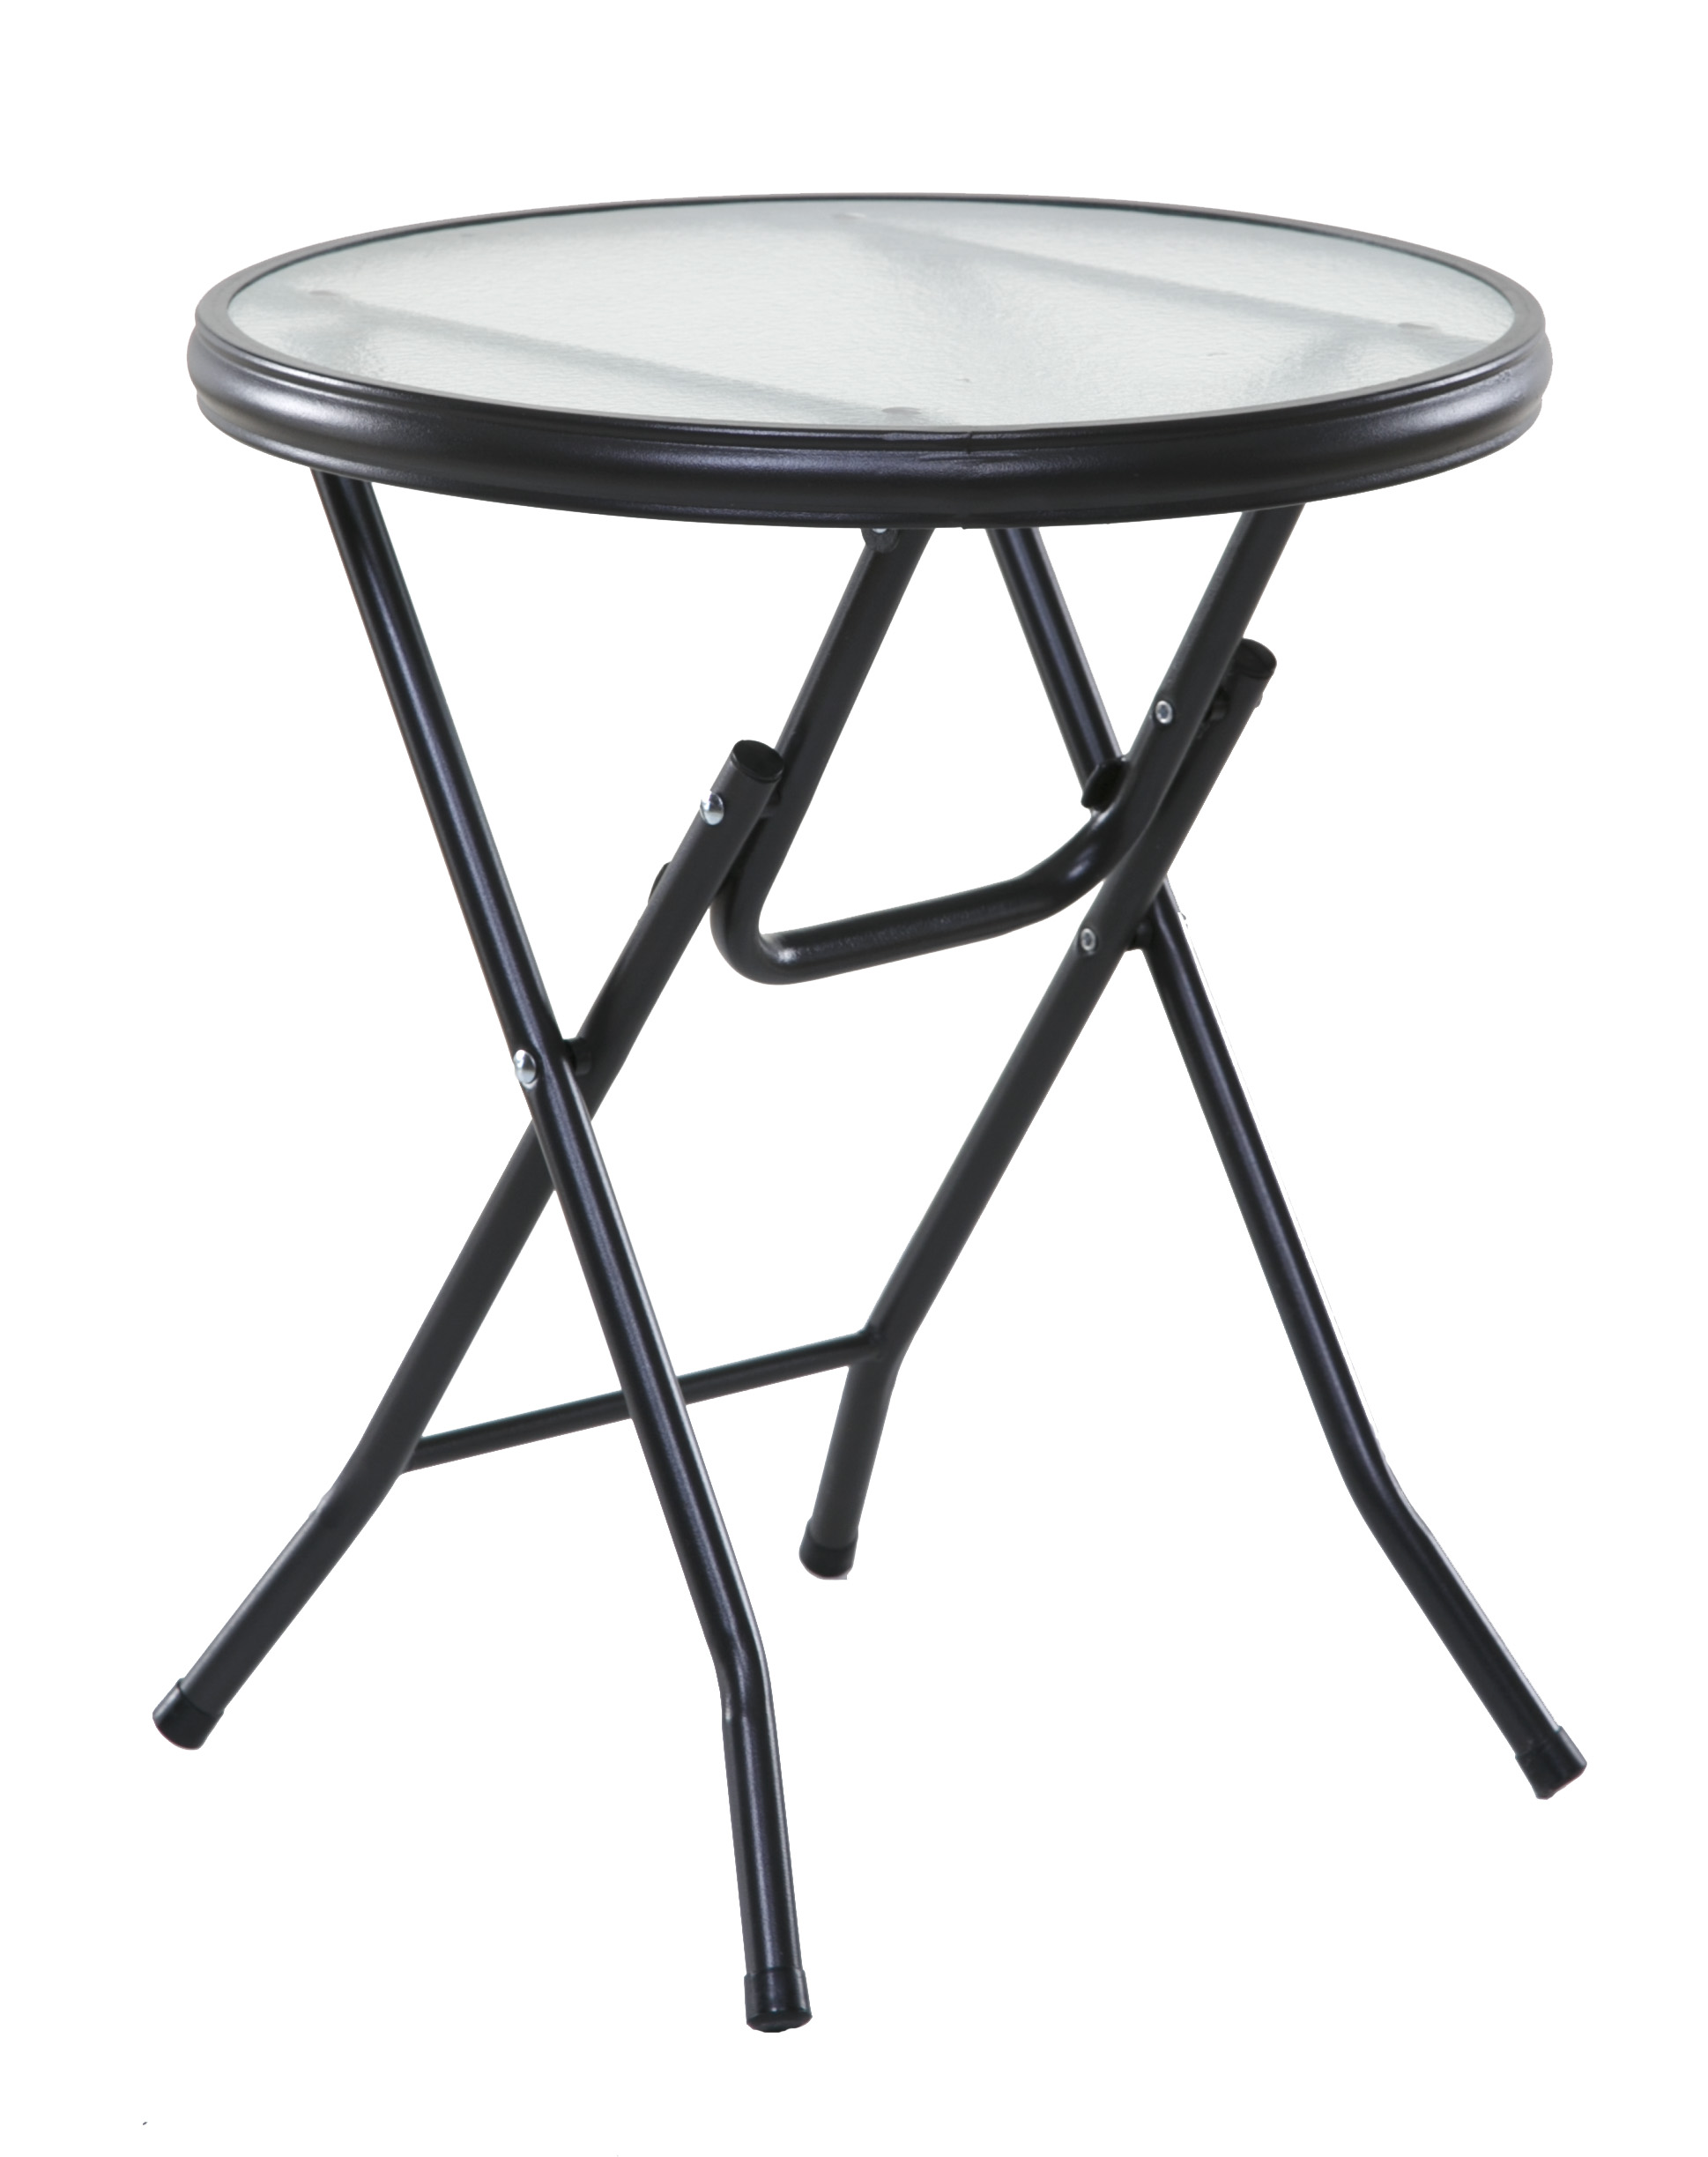 Onespace Basics 16 Round Folding Side Table Clear Walmart Com